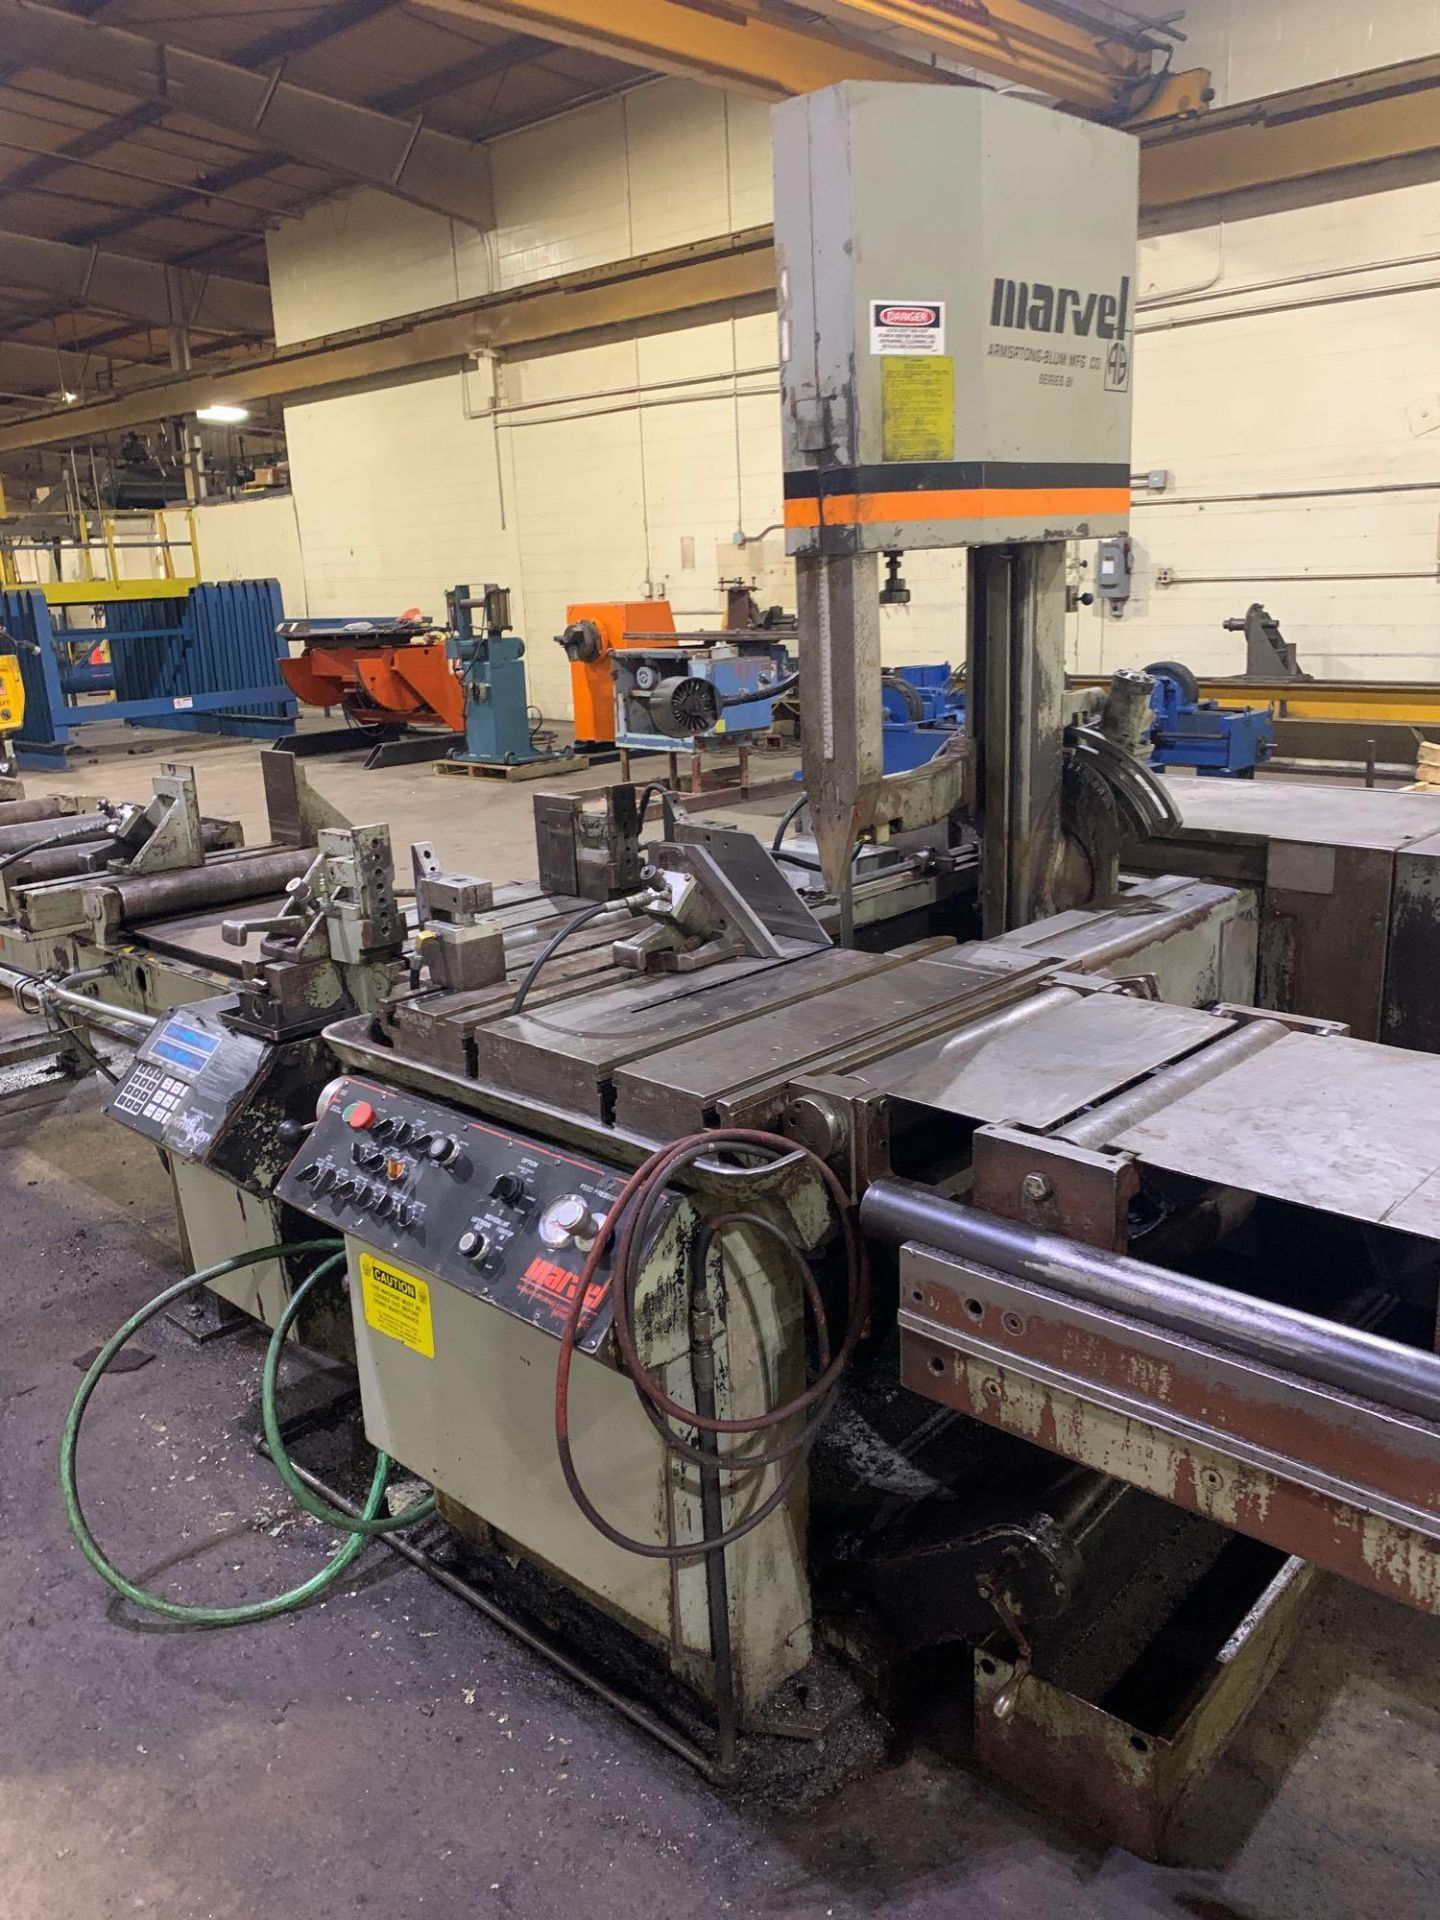 """Marvel Armstrong Blum Automatic Universal Band Saw Model 81A11PC Rated Capacity 18"""" x 20"""" Serial No. - Image 18 of 30"""